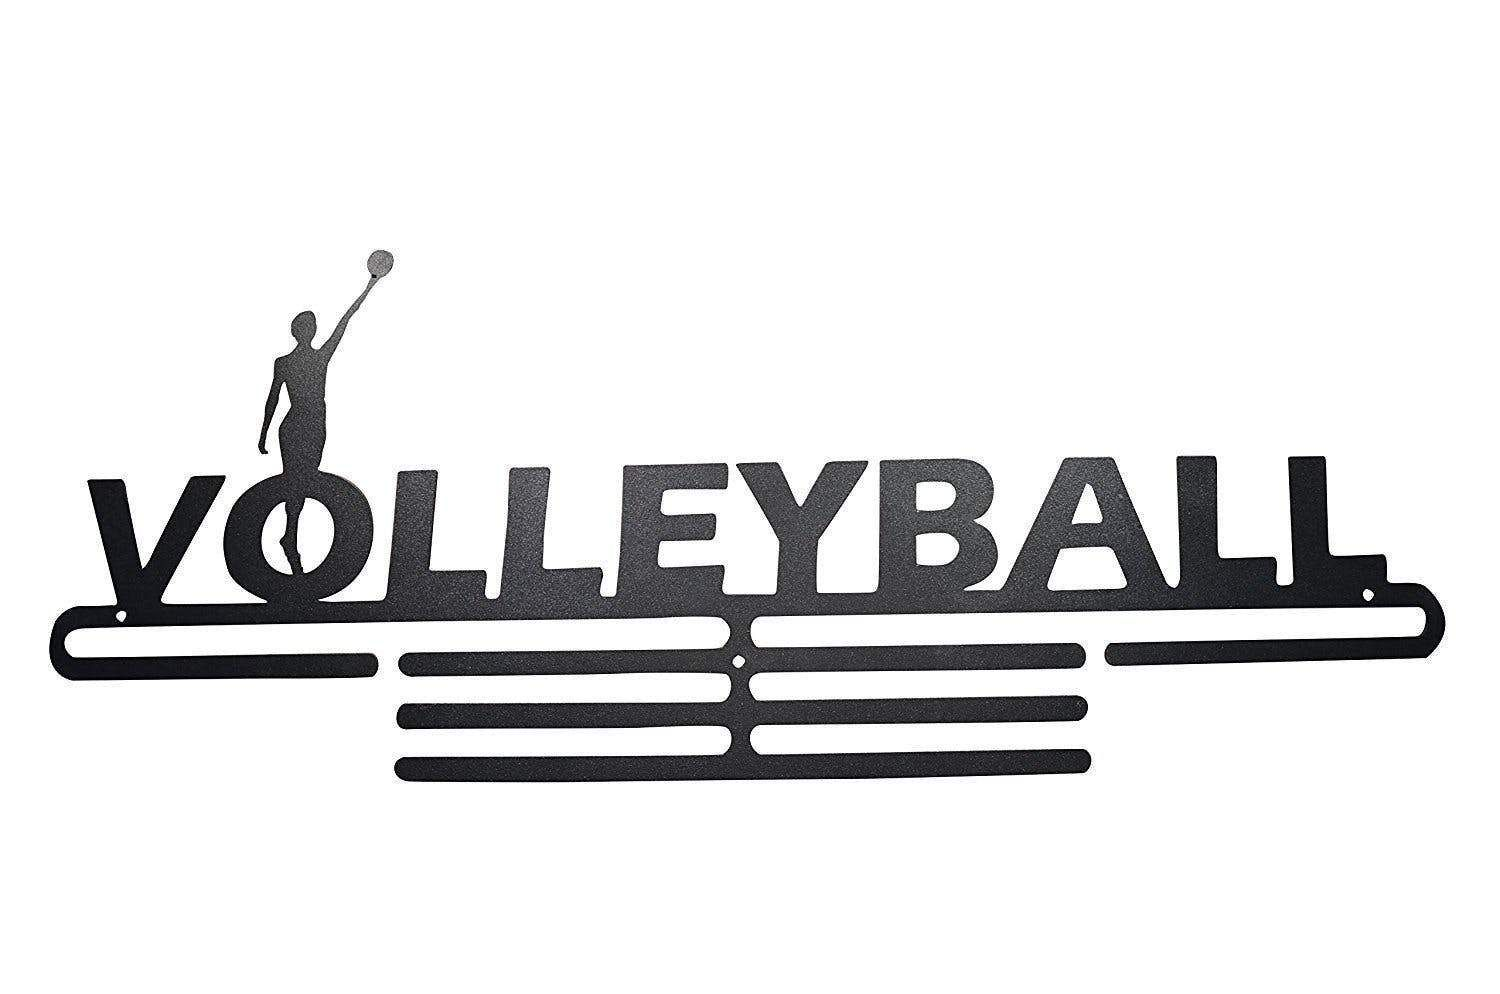 Volleyball Medal Display Rack With Images Volleyball Medal Display Medal Hanger